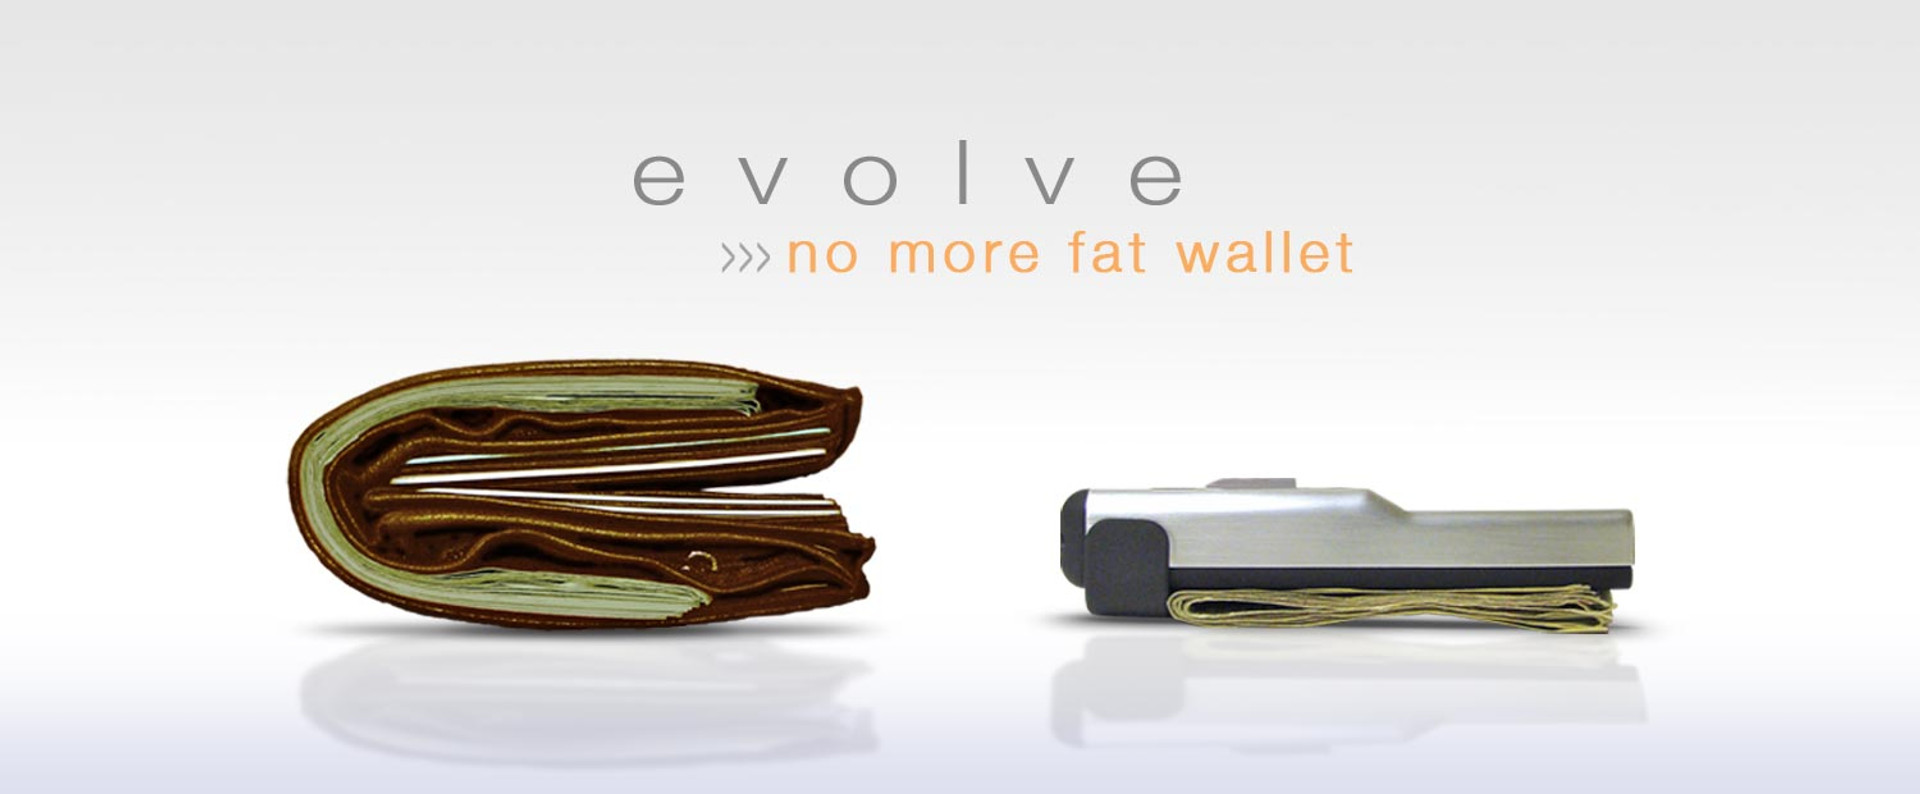 make the decision to get rid of that fat wallet!